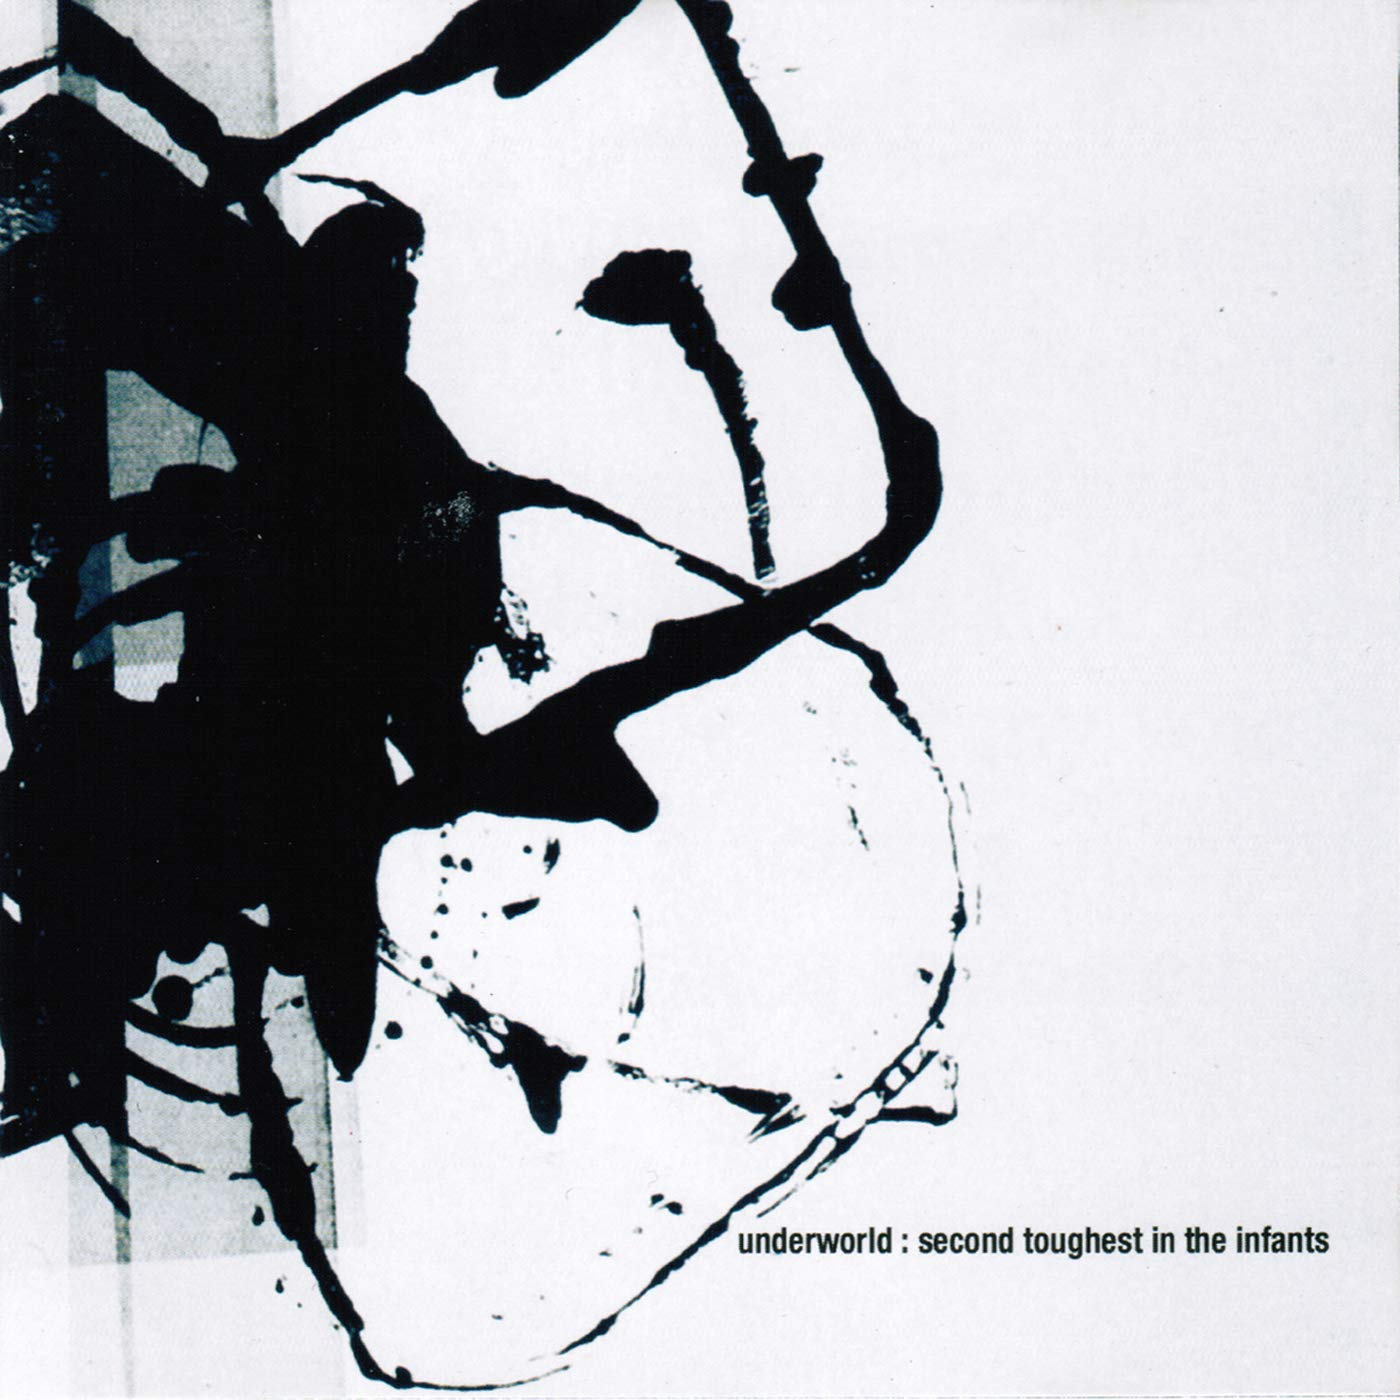 Underworld - Second Toughest In The Infants (Remastered LP) - Amazon.com  Music